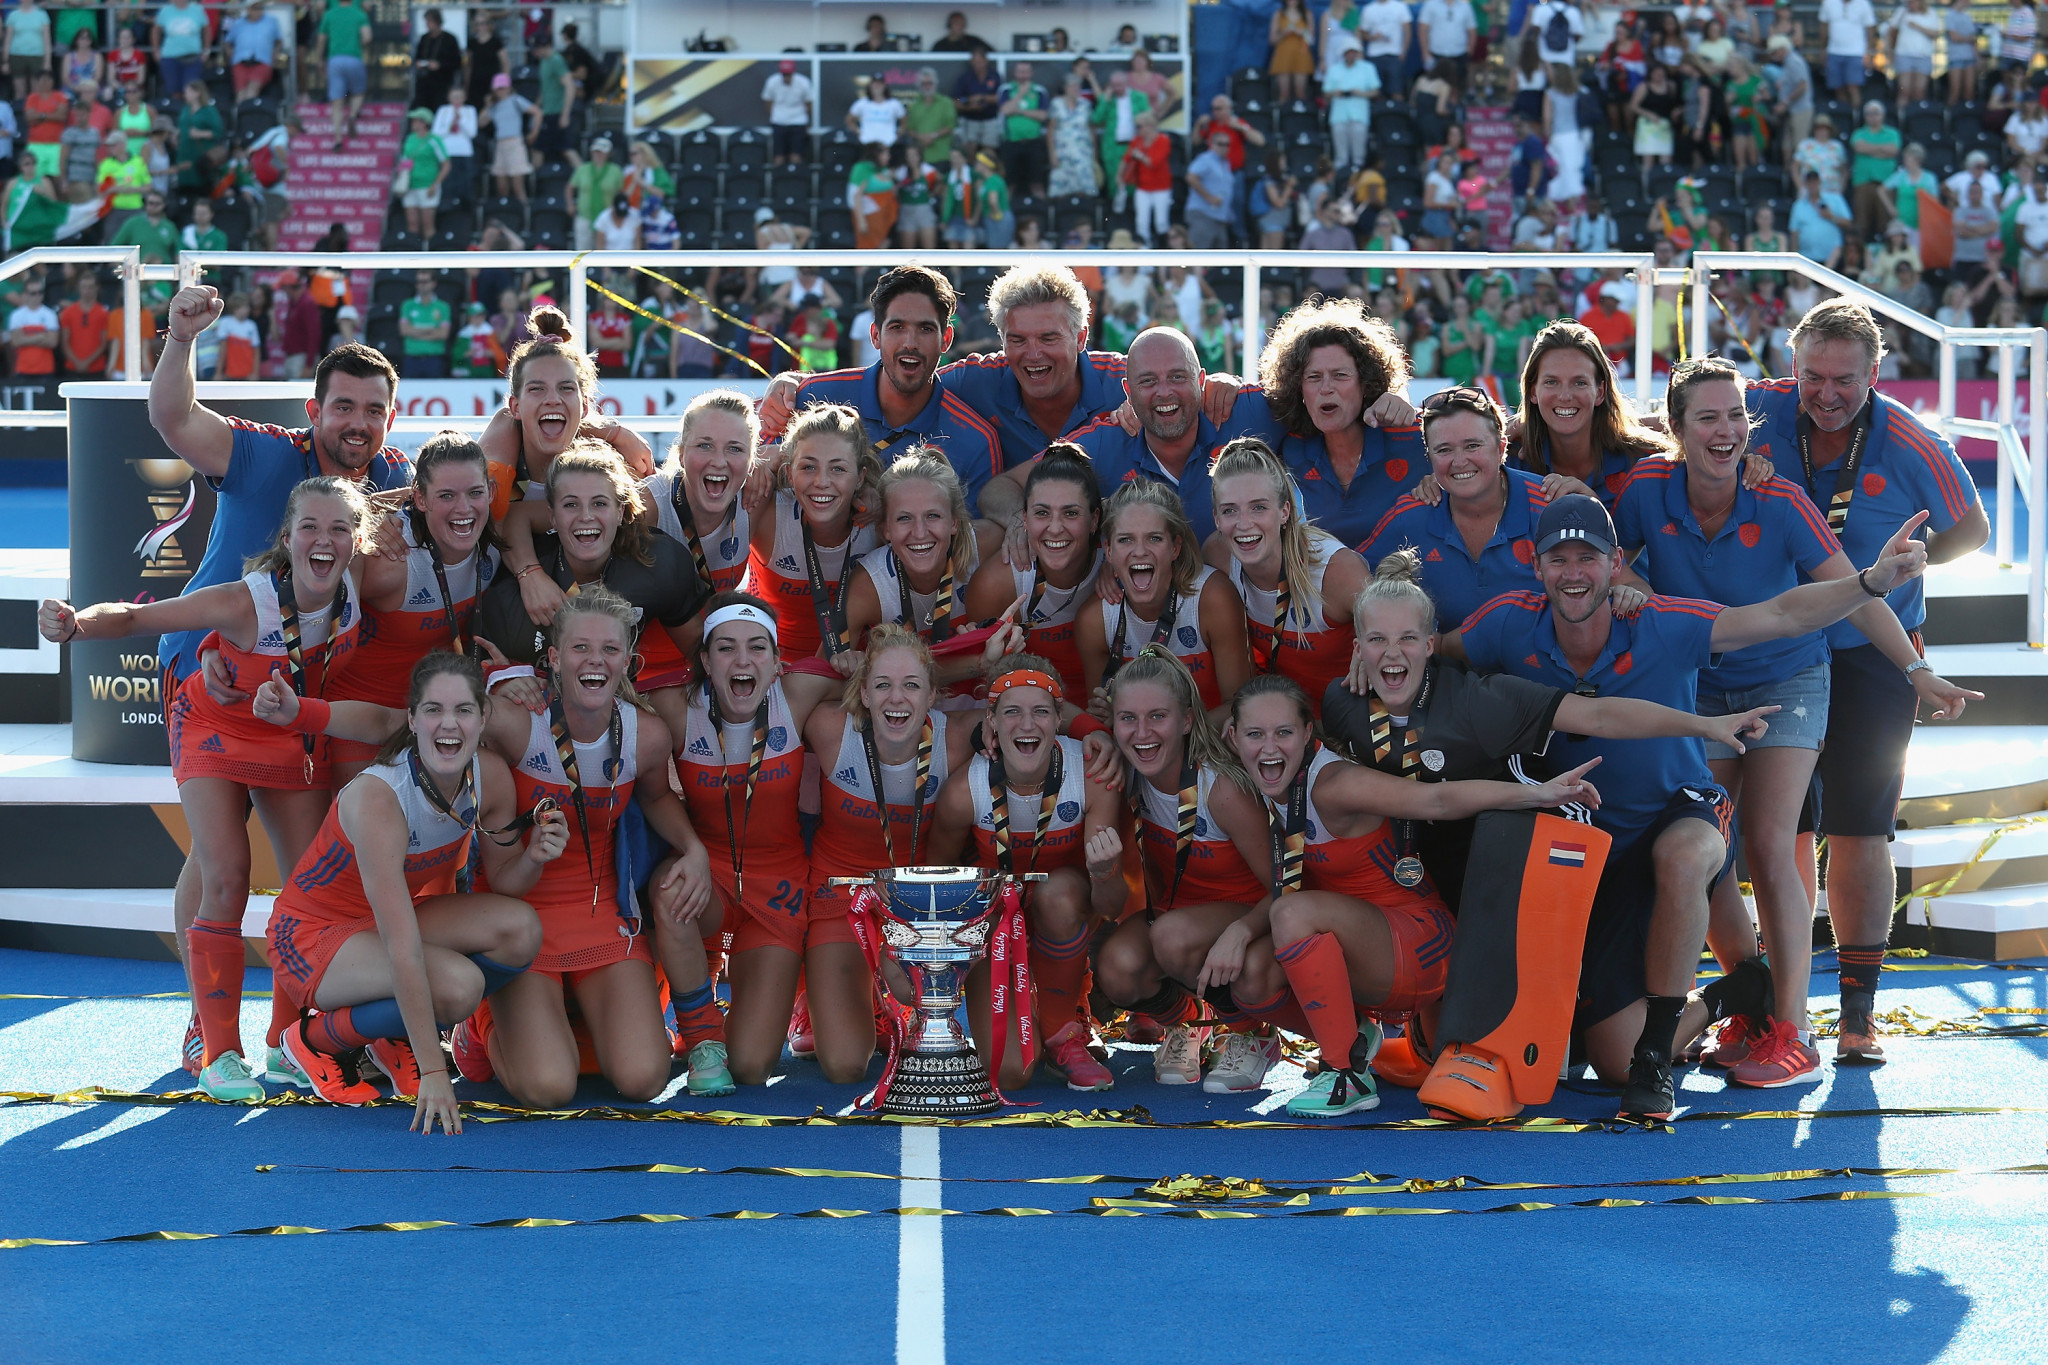 Ireland climb into top 10 as Dutch retain first place on FIH women's world rankings